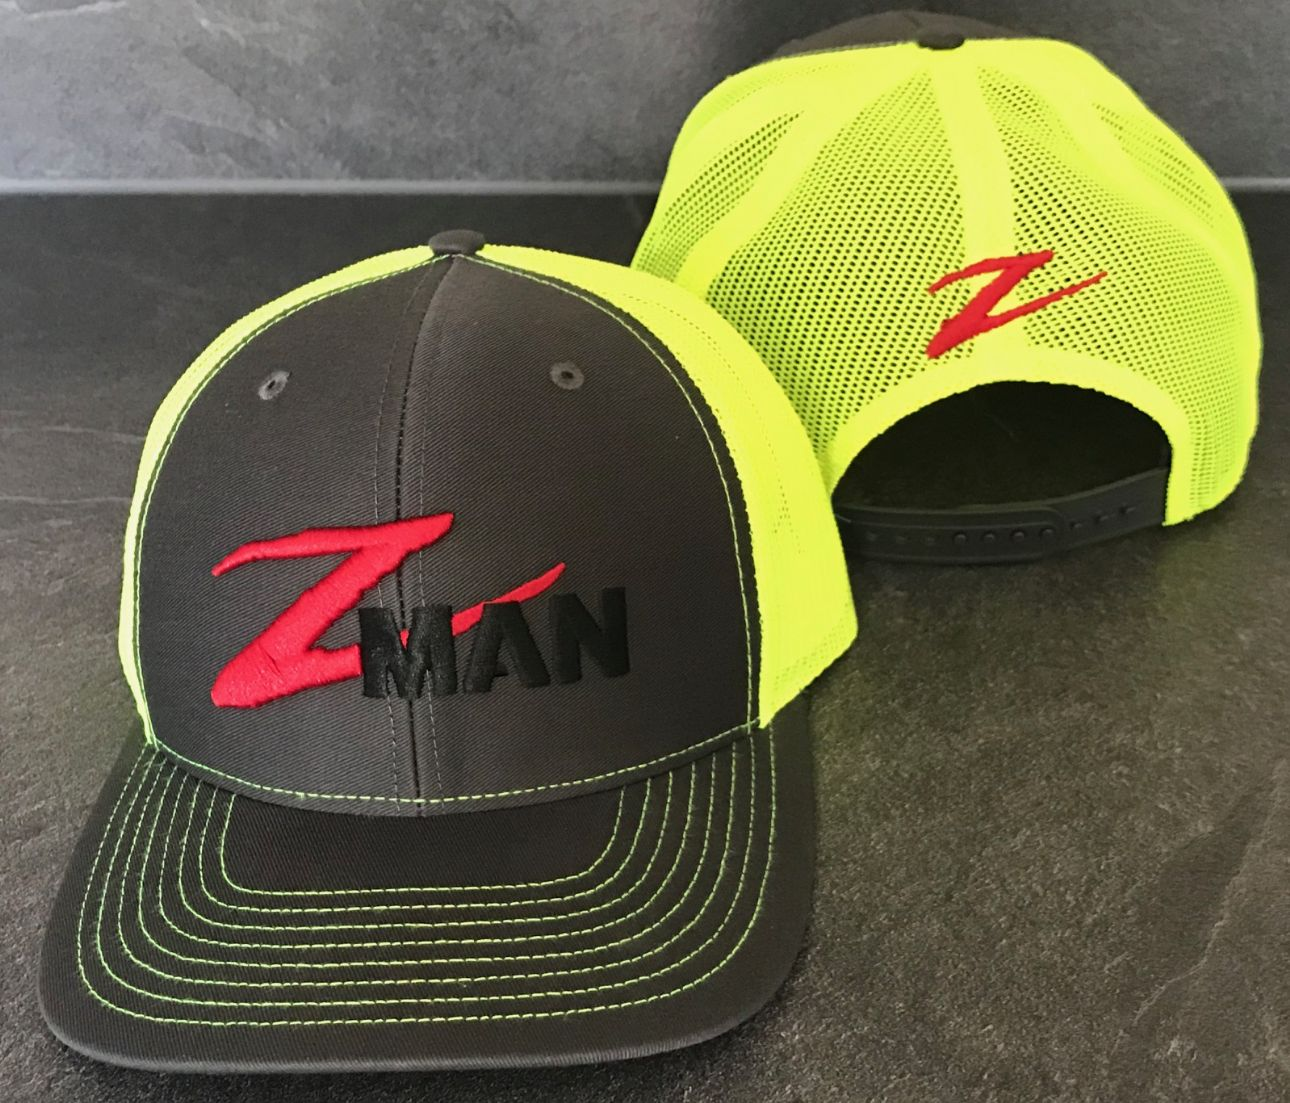 Z-MAN Trucker HatZ